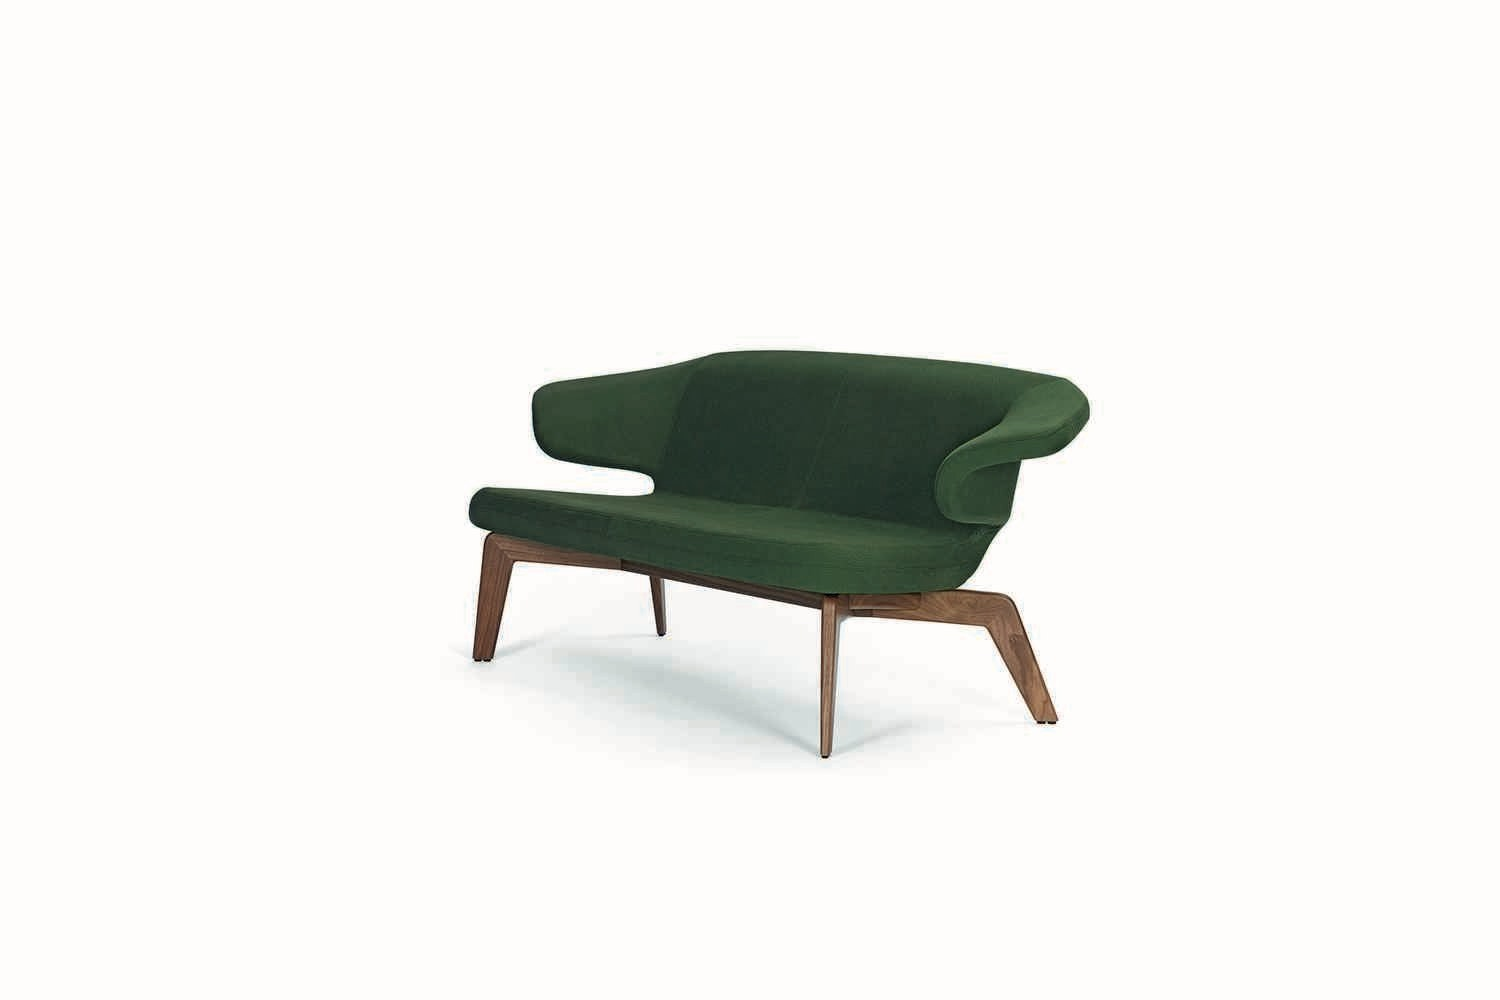 Munich Sofa by Sauerbruch for ClassiCon